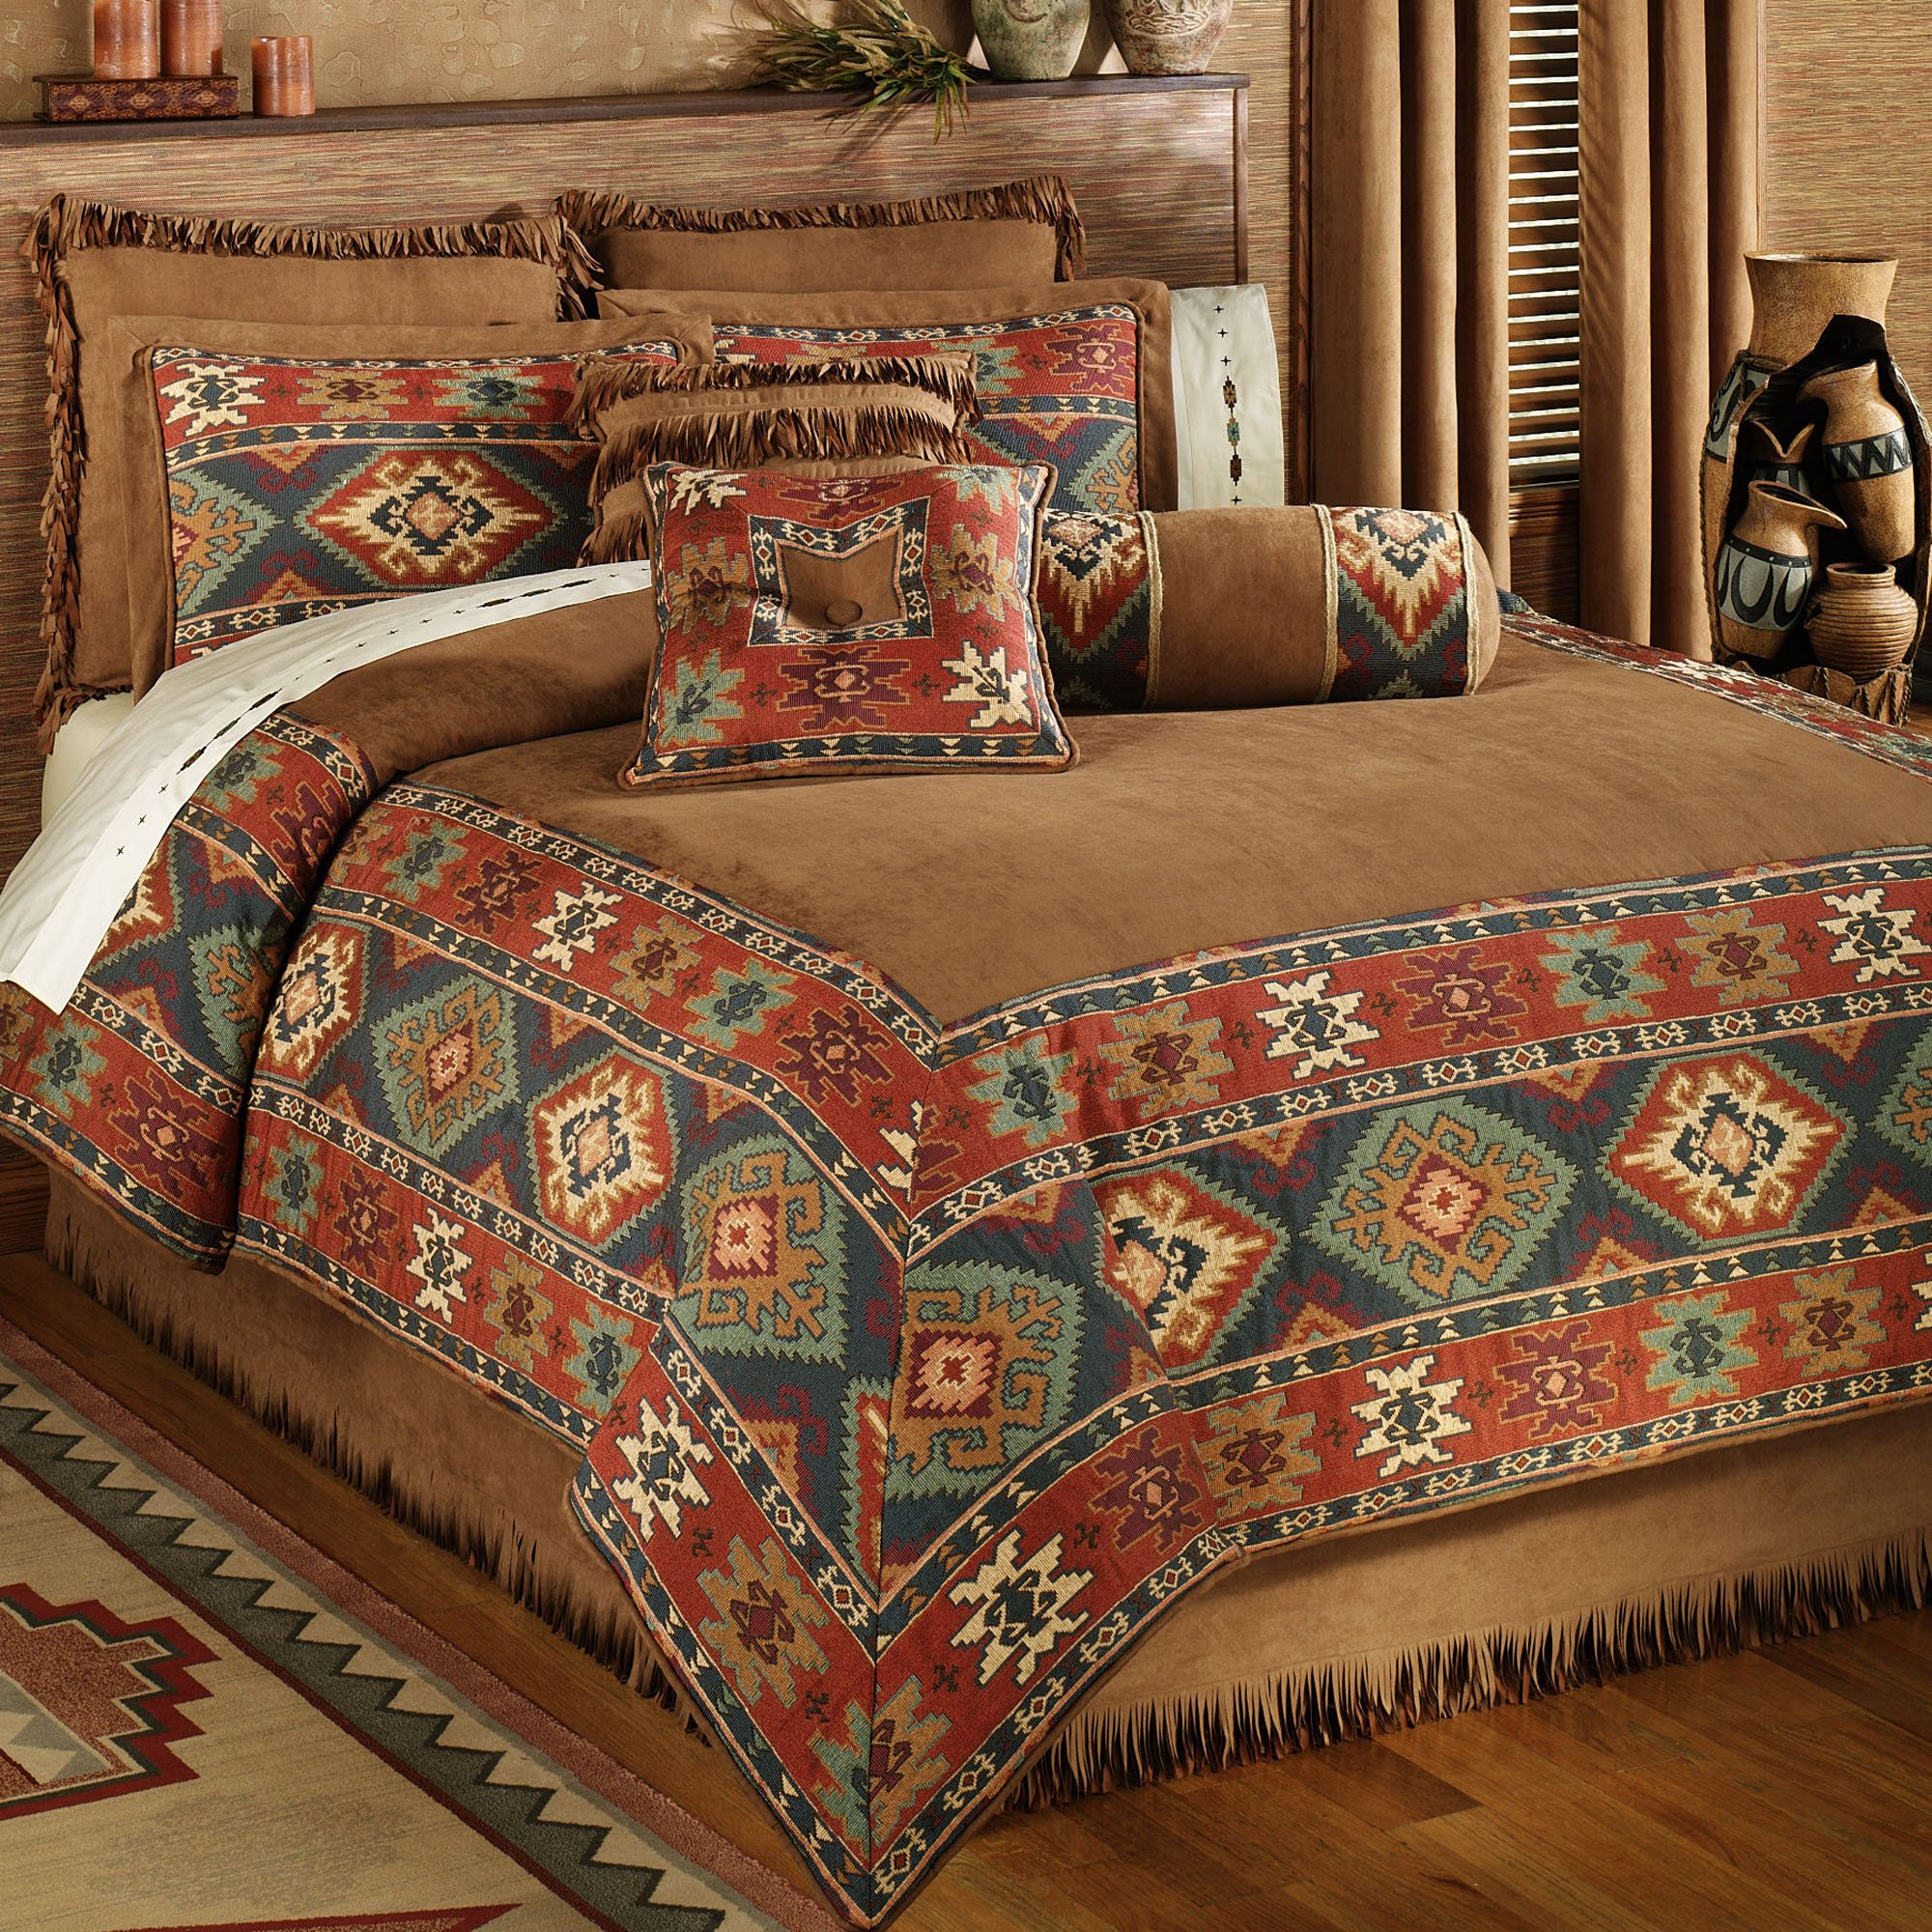 canyon ridge comforter set | bedroom stuff | pinterest | comforter